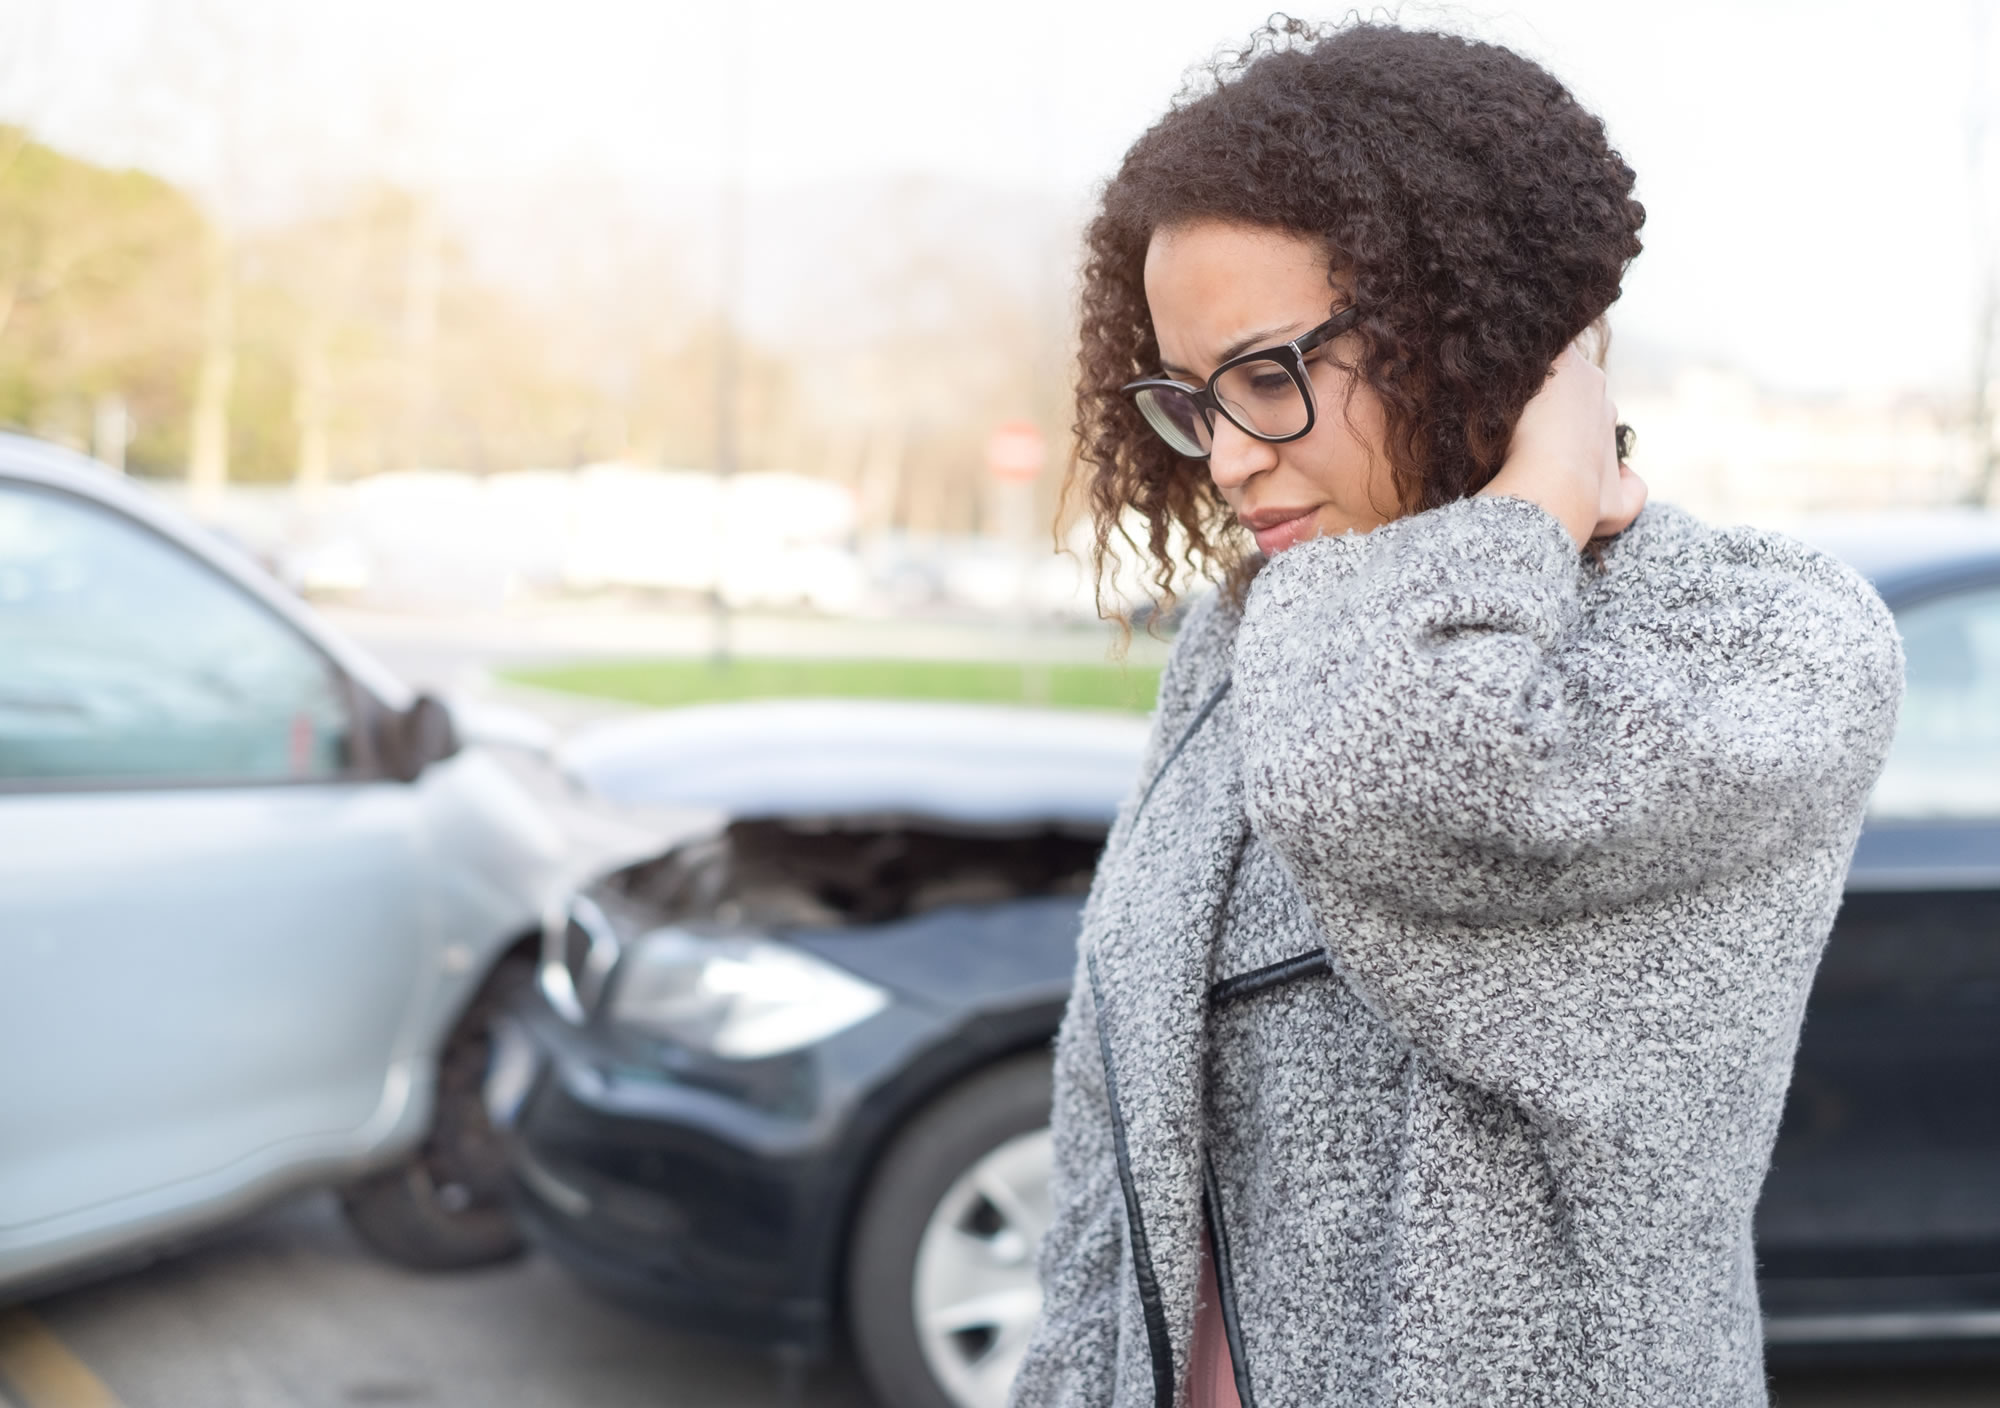 Car Crash, Whiplash, Neck Injury - Compensation For Your Accident / Personal Injury Claim Managers / Accident Claims UK